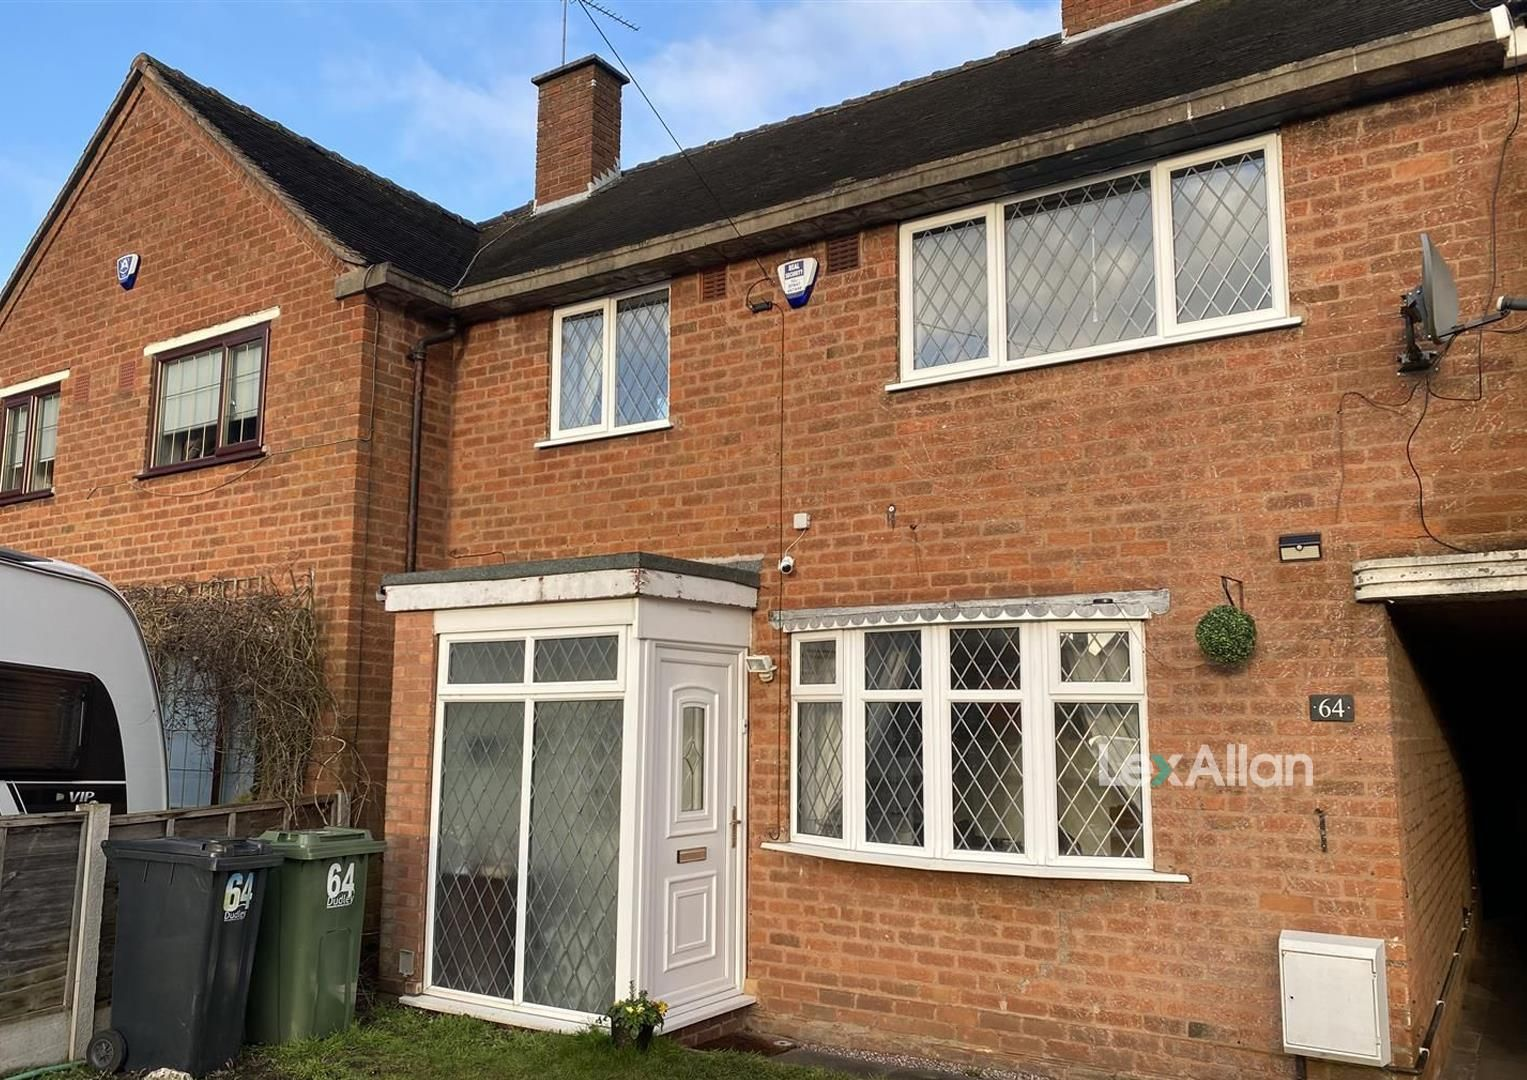 3 bed terraced for sale, DY8